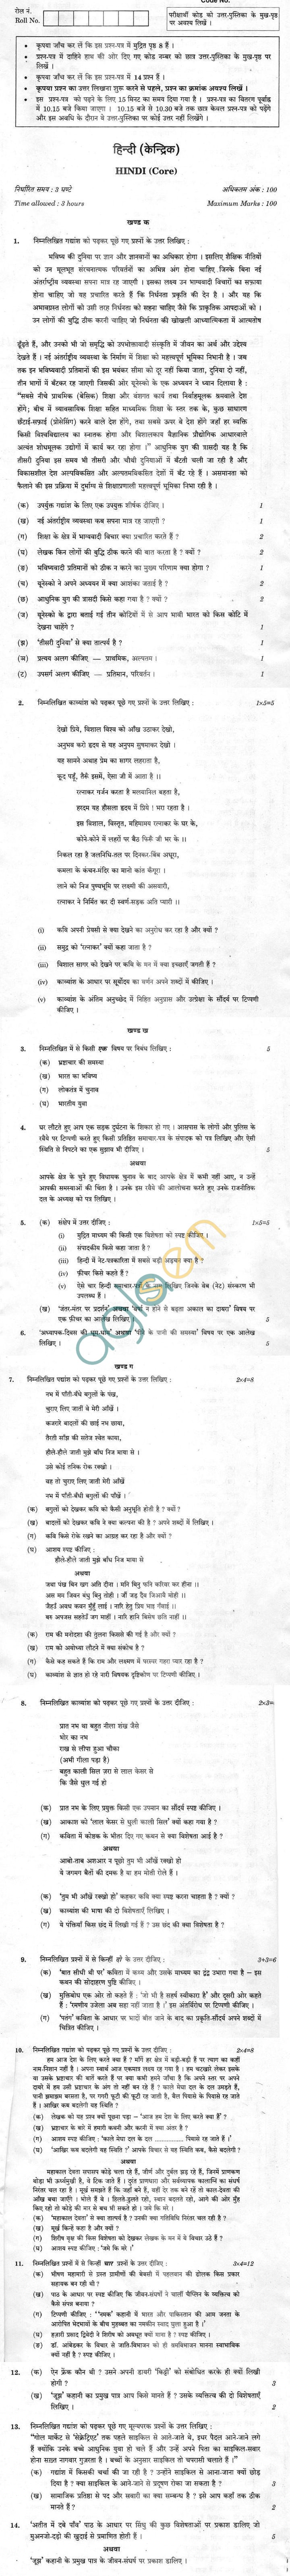 CBSE Compartment Exam 2013 Class XII Question Paper - Hindi (Core)